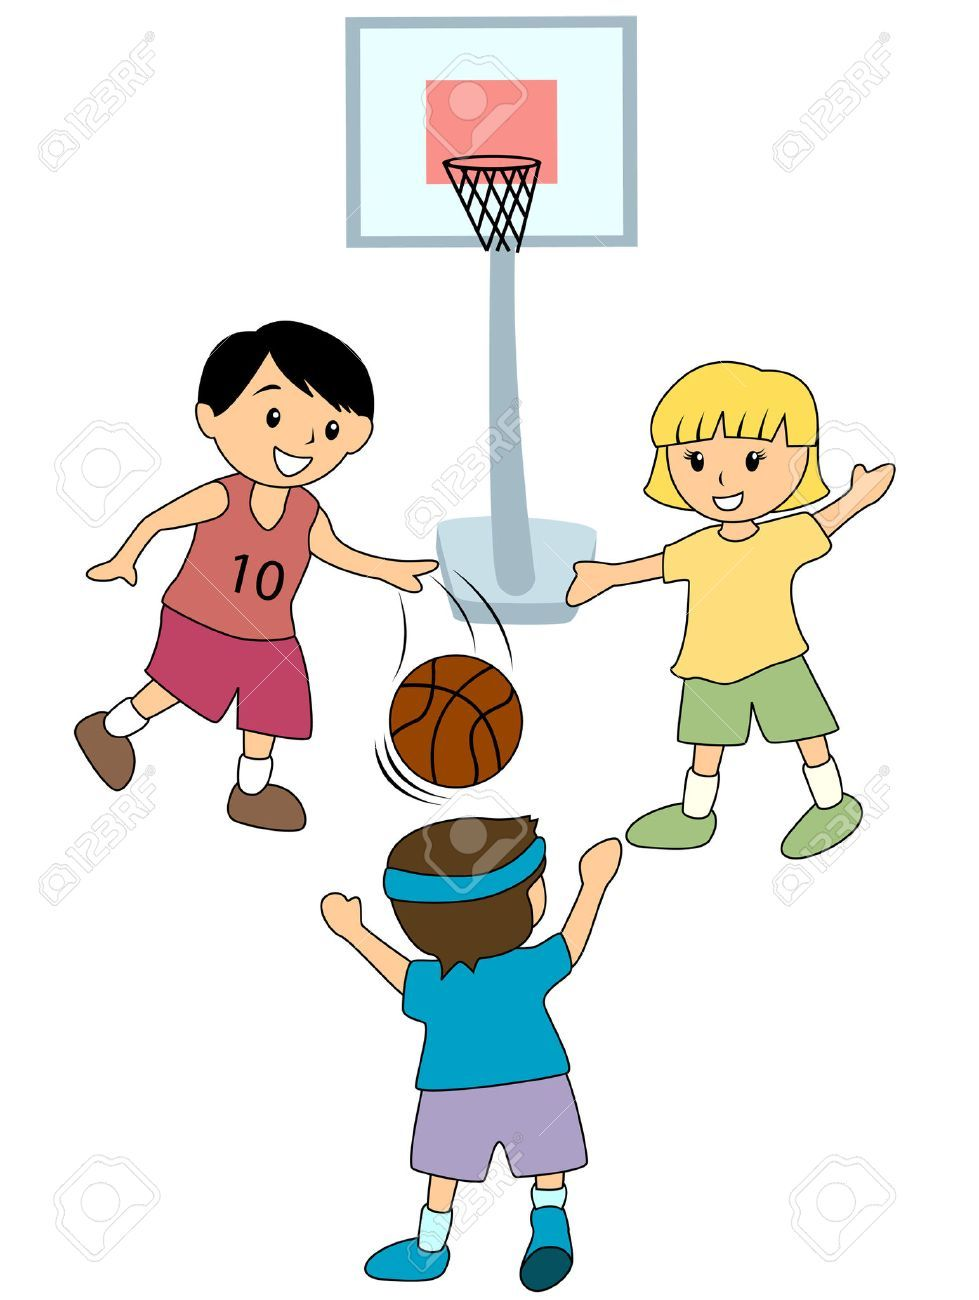 Basketball playing clipart 5 » Clipart Portal.